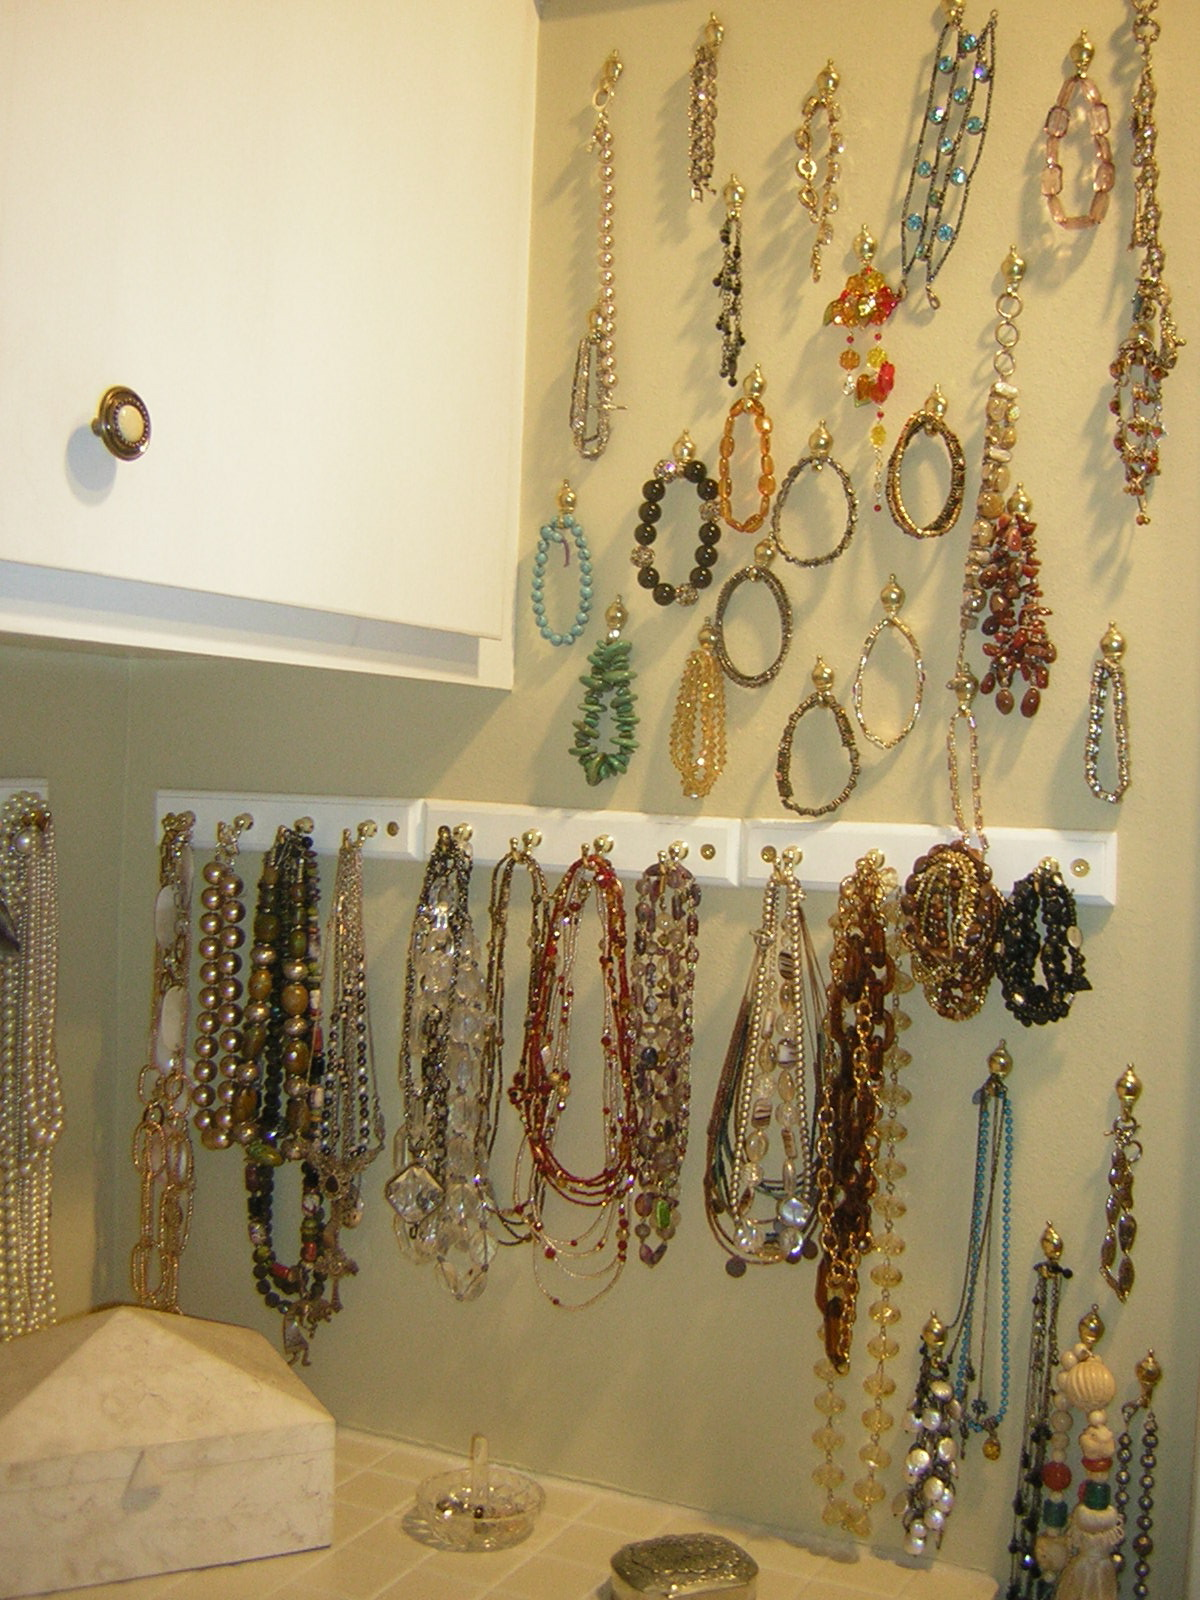 Jewelry organizing ideas what are yours san diego - Ideas for storing jewellery ...